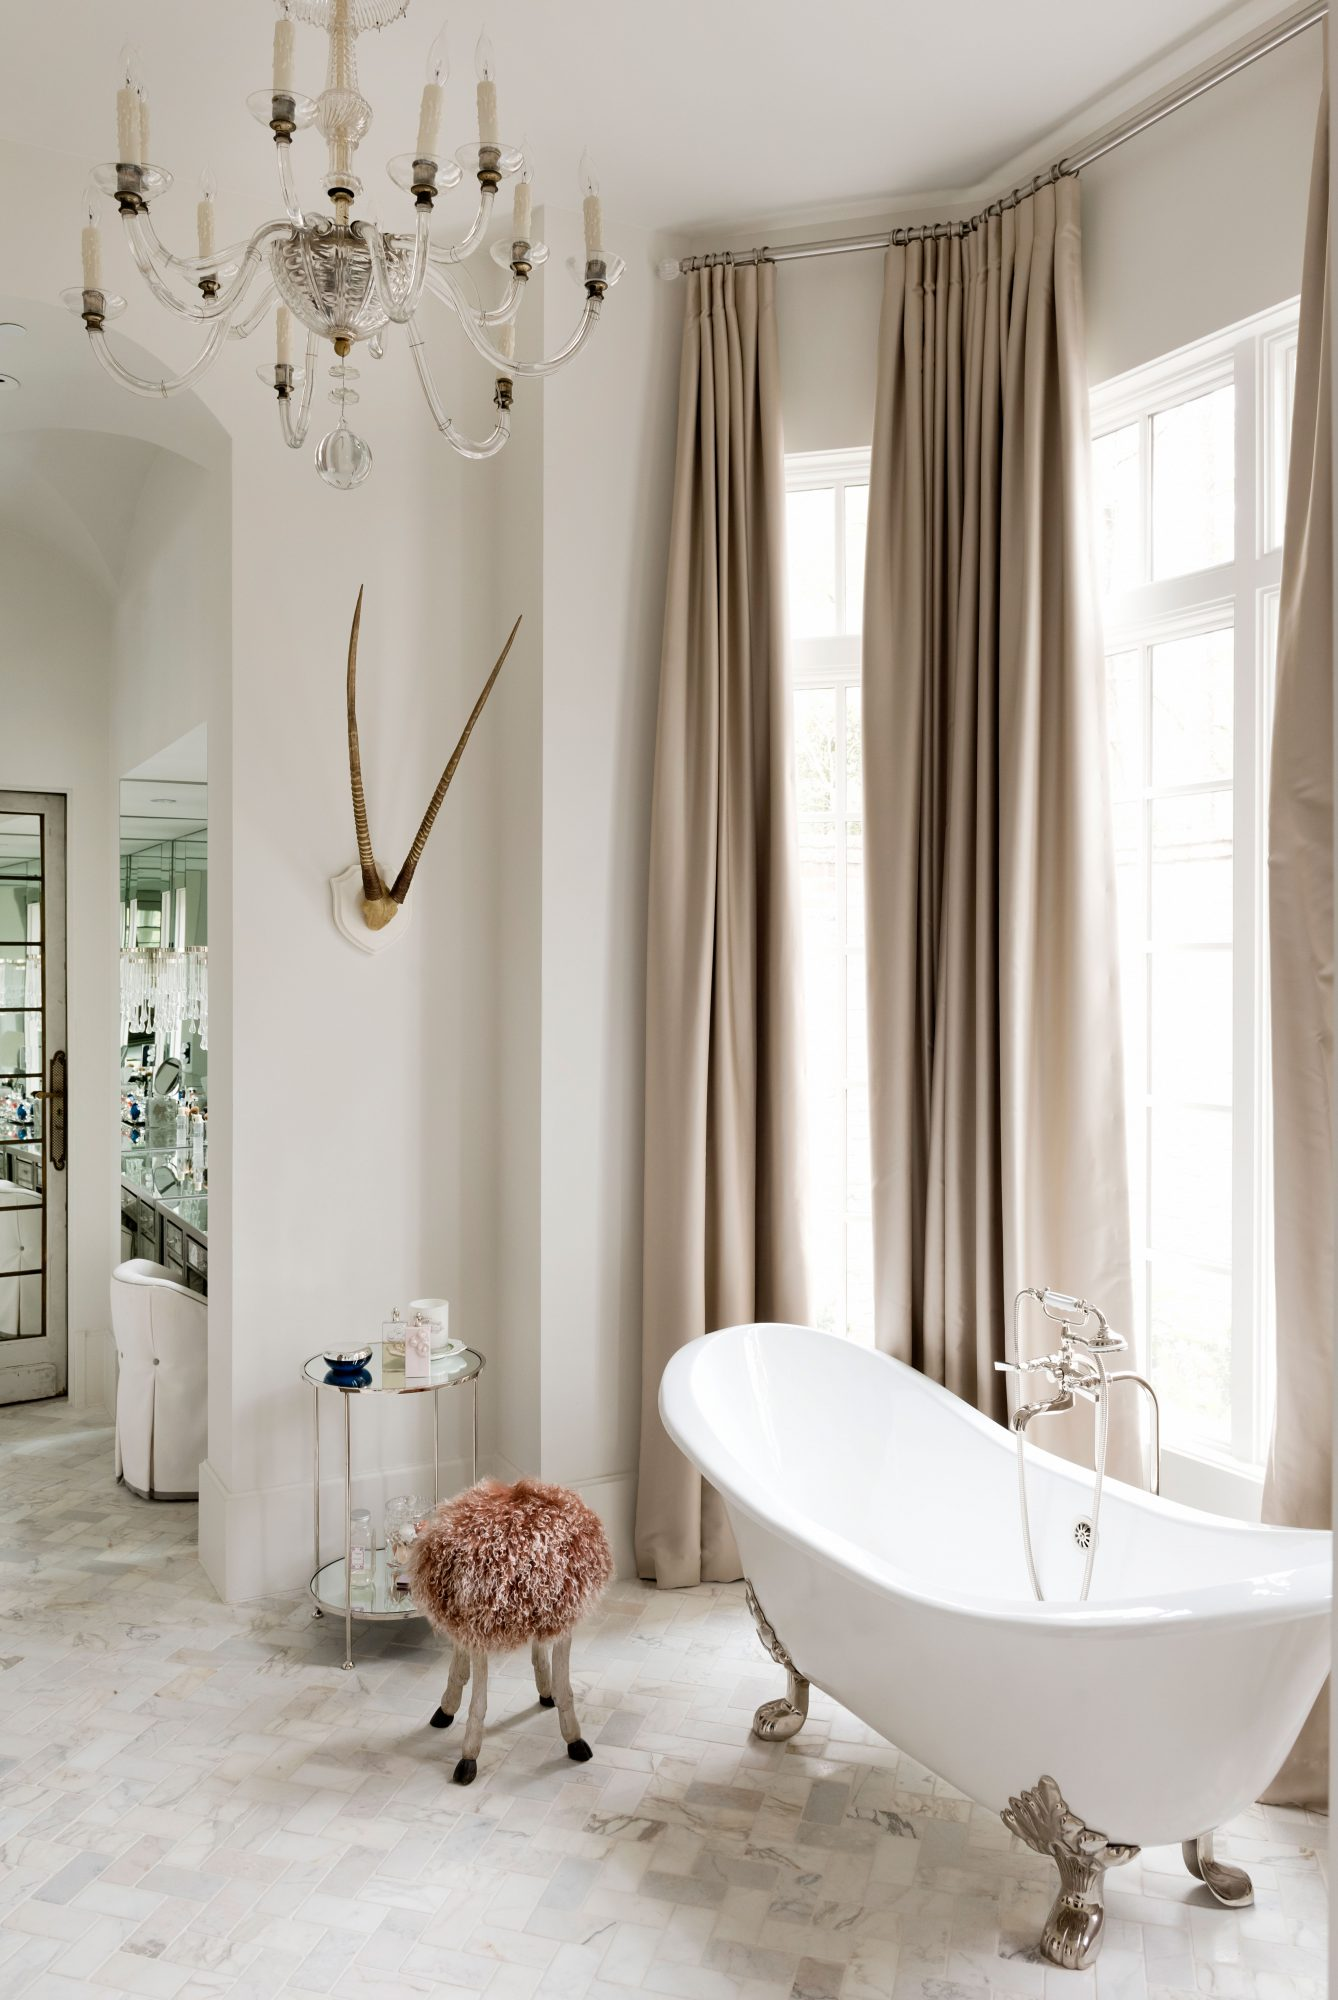 Soaking Tub in Front of Floor-to-Ceiling Windows with Draperies